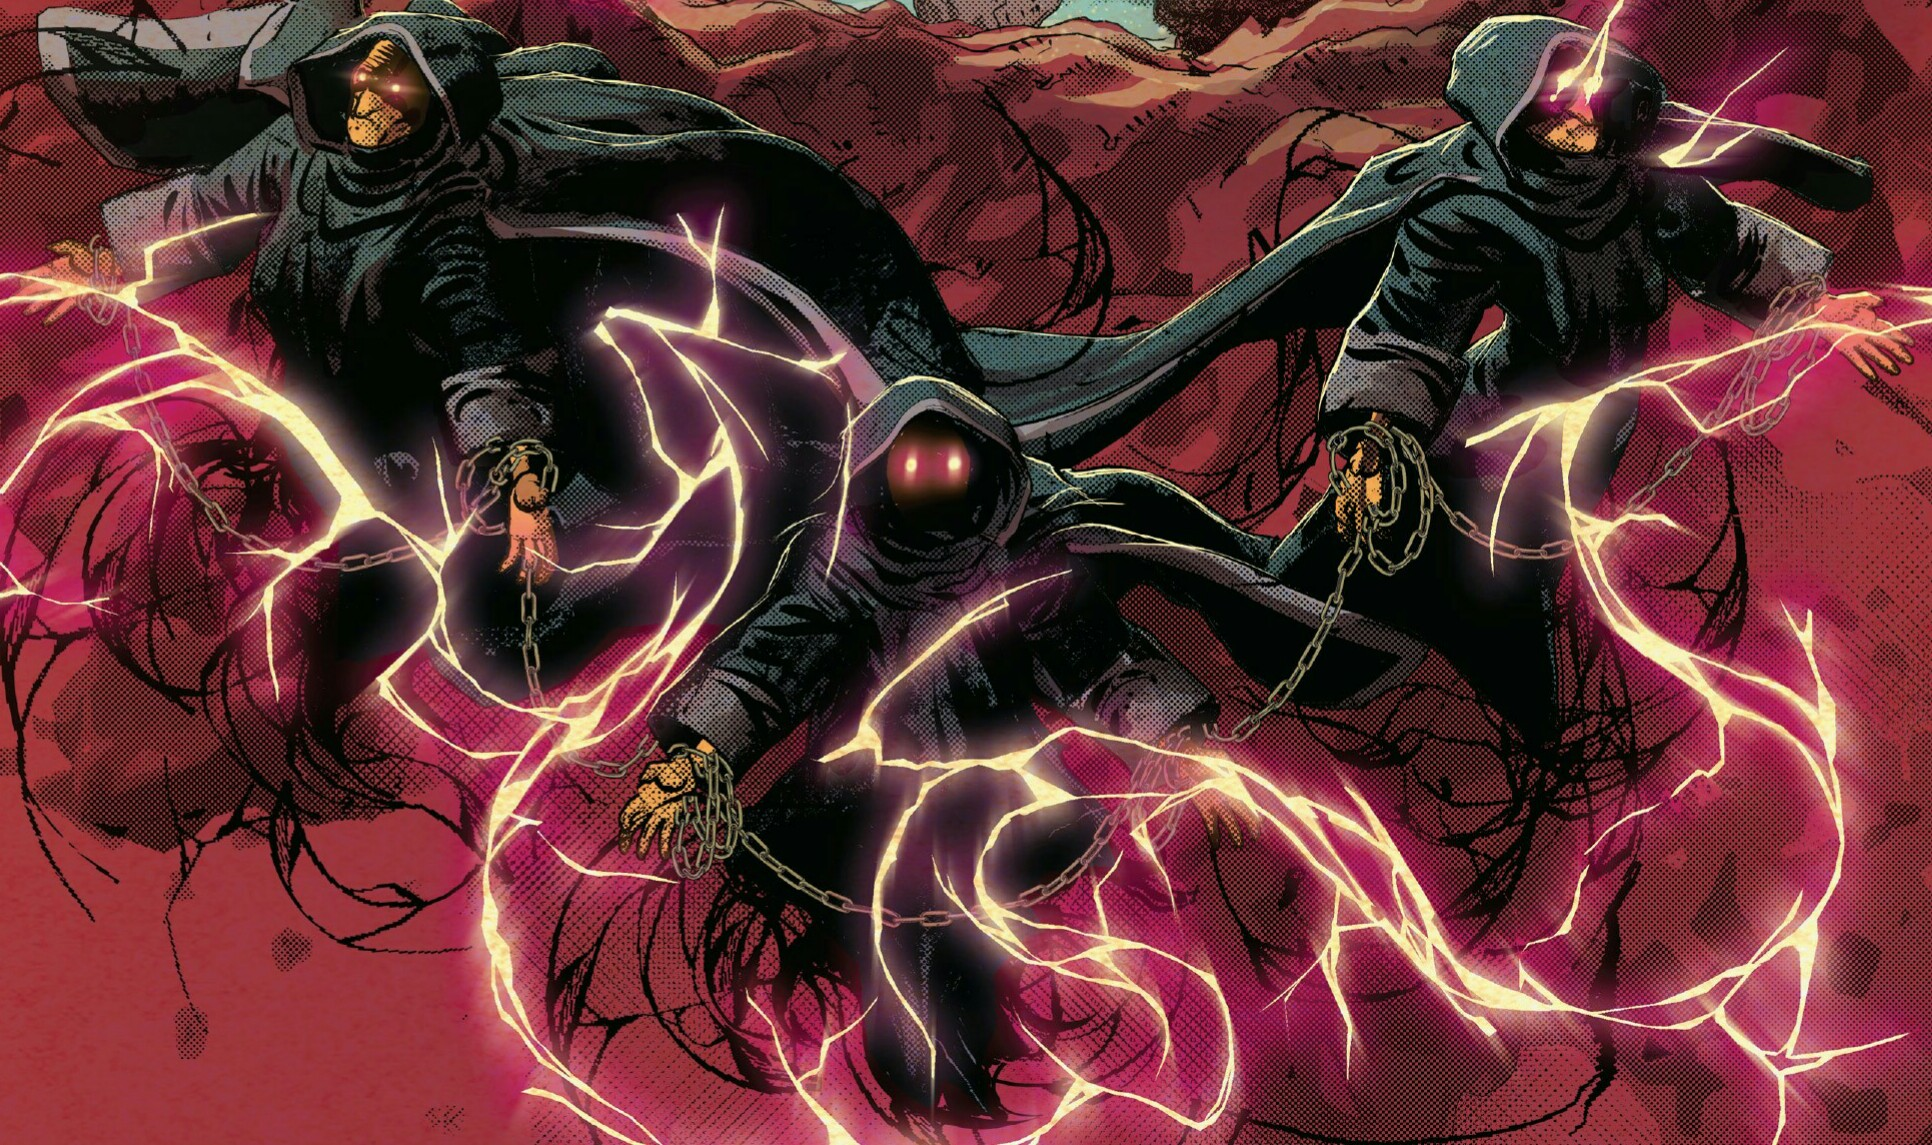 Coven (Witches) (Earth-616)